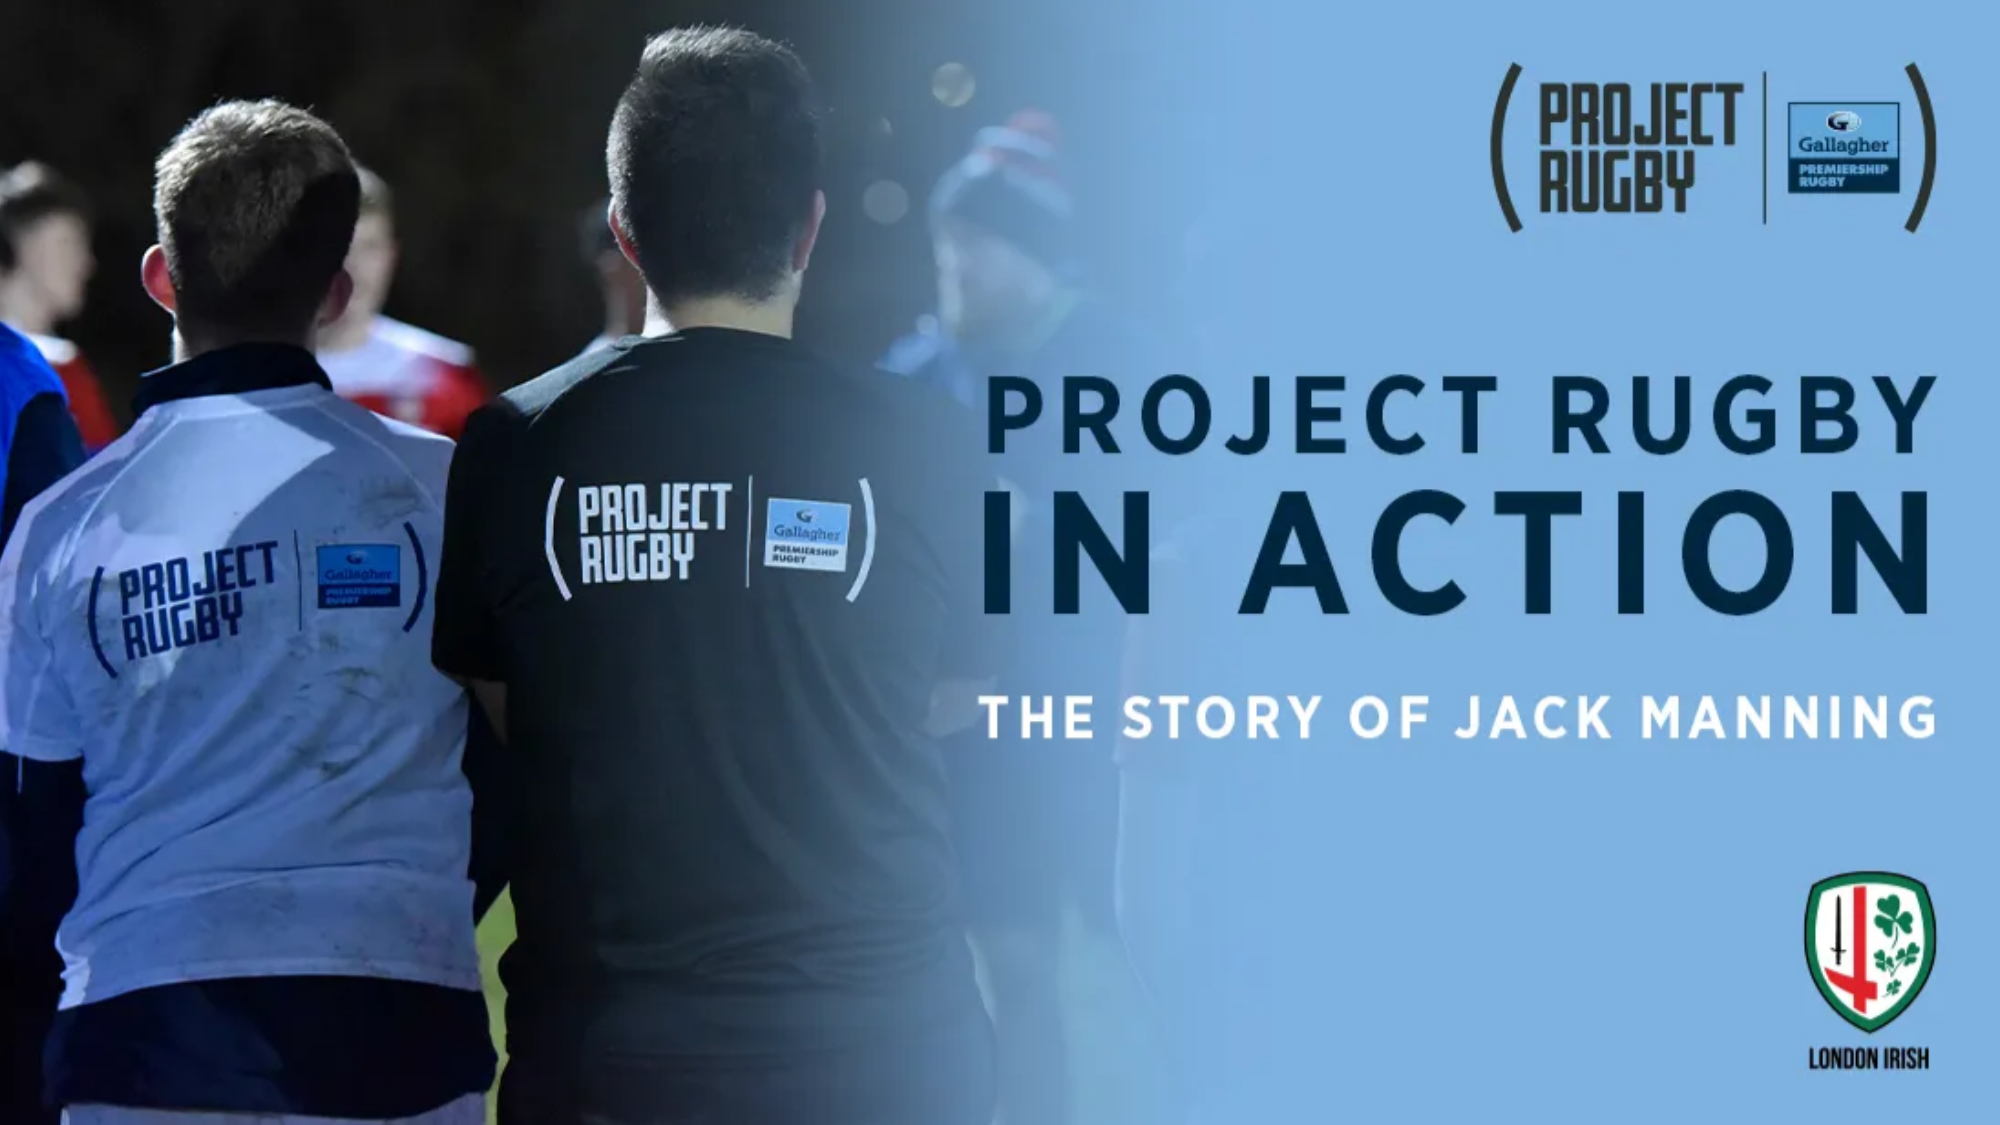 Project Rugby has given me a game I love to play as well as the confidence and ability to join my local club: Jack's story